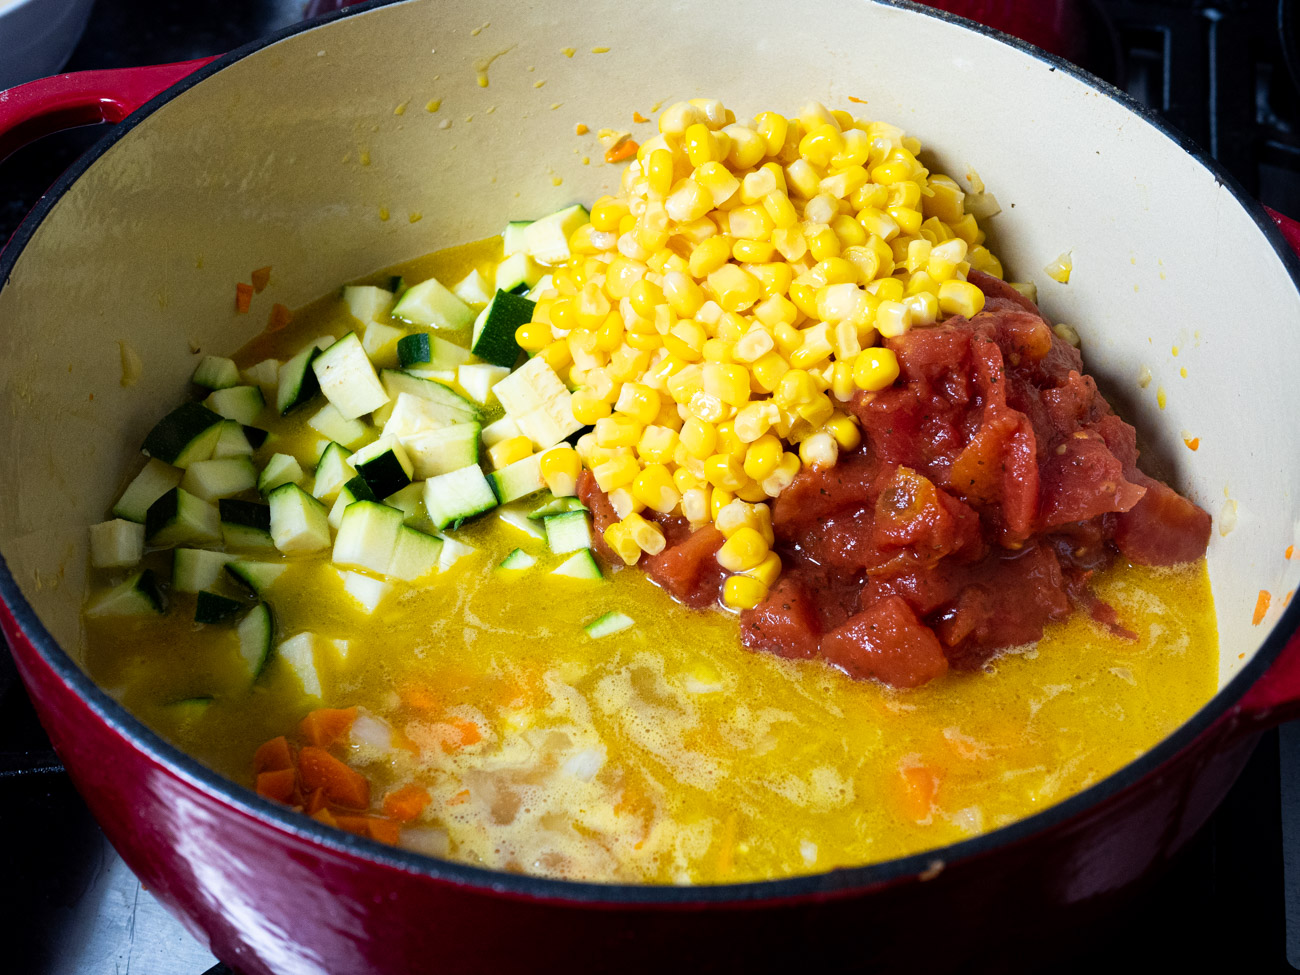 Add zucchini, tomatoes, corn, and seasonings. Heat for another 10-15, until mixture begins to boil.